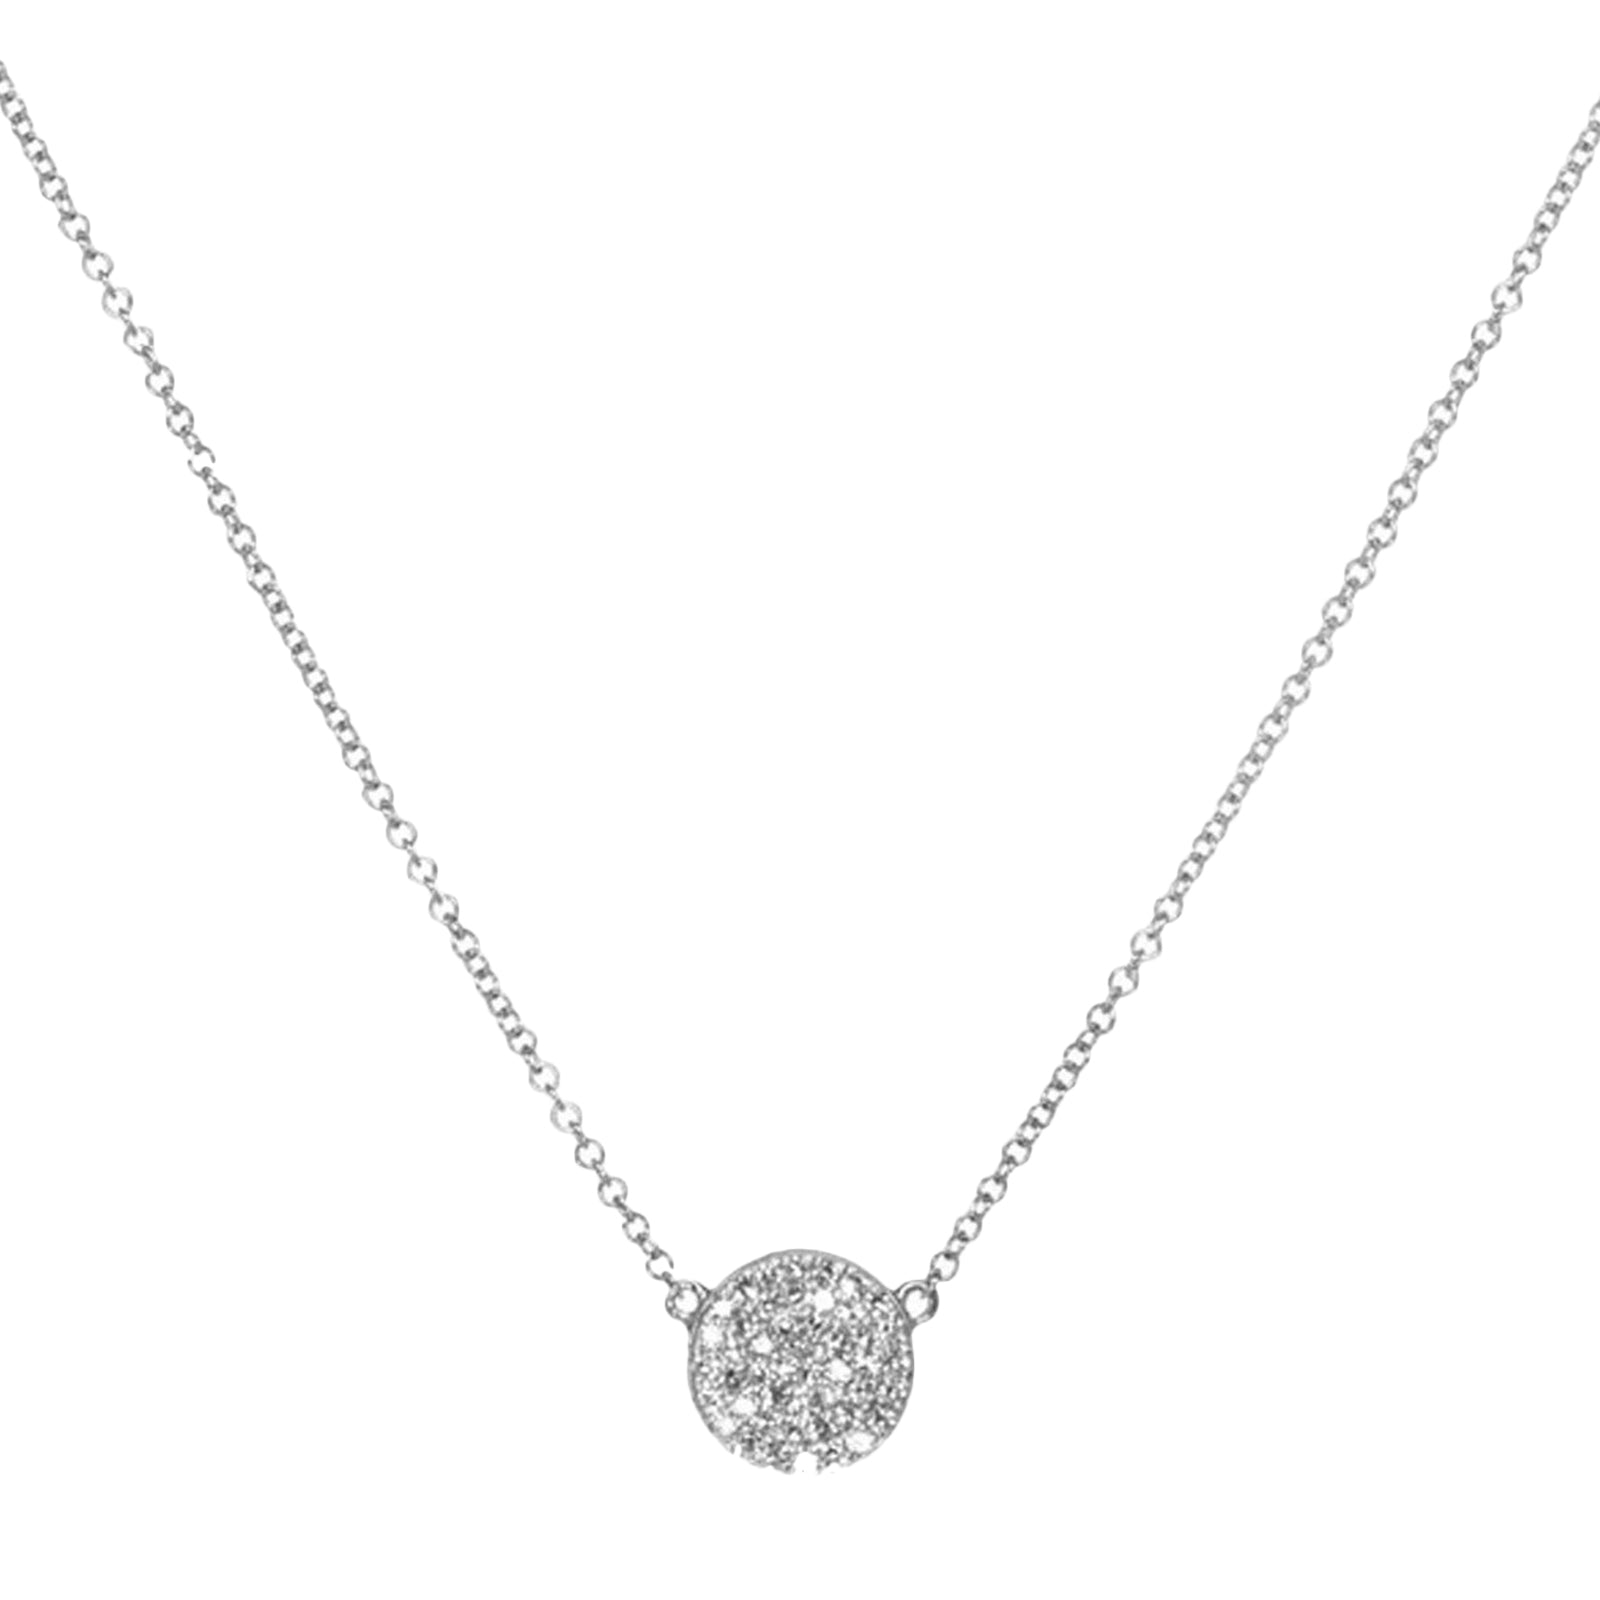 EF Collection Diamond Disk Necklace - White Gold - Necklaces - Broken English Jewelry